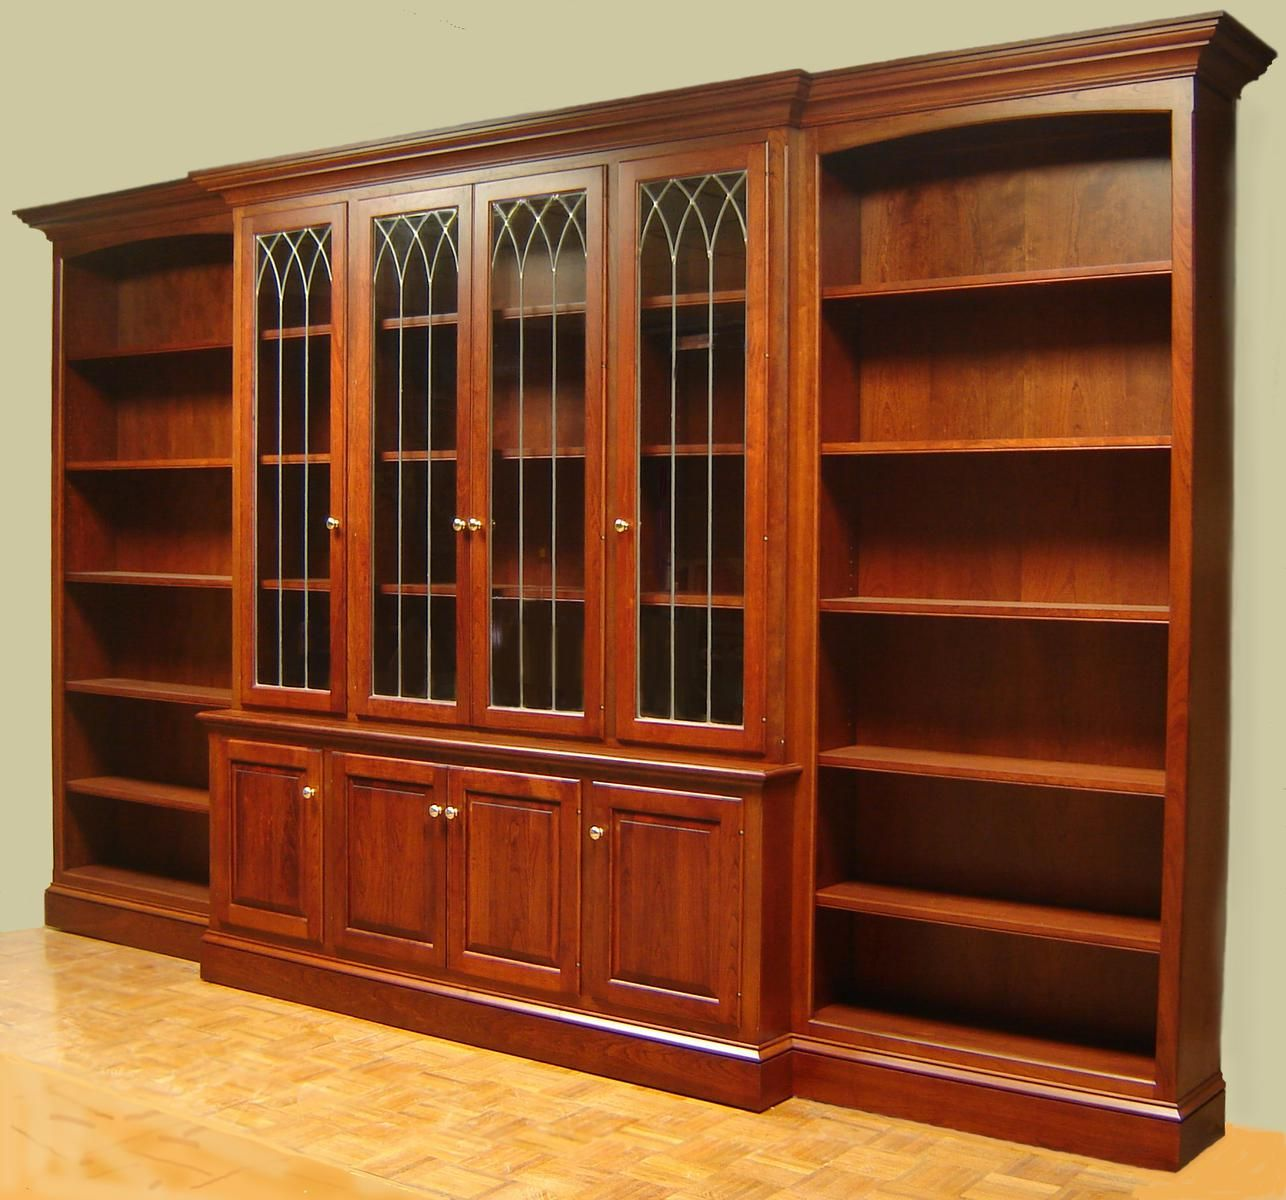 Hand Crafted Cherry Bookcase With Leaded Glass Doors And ...